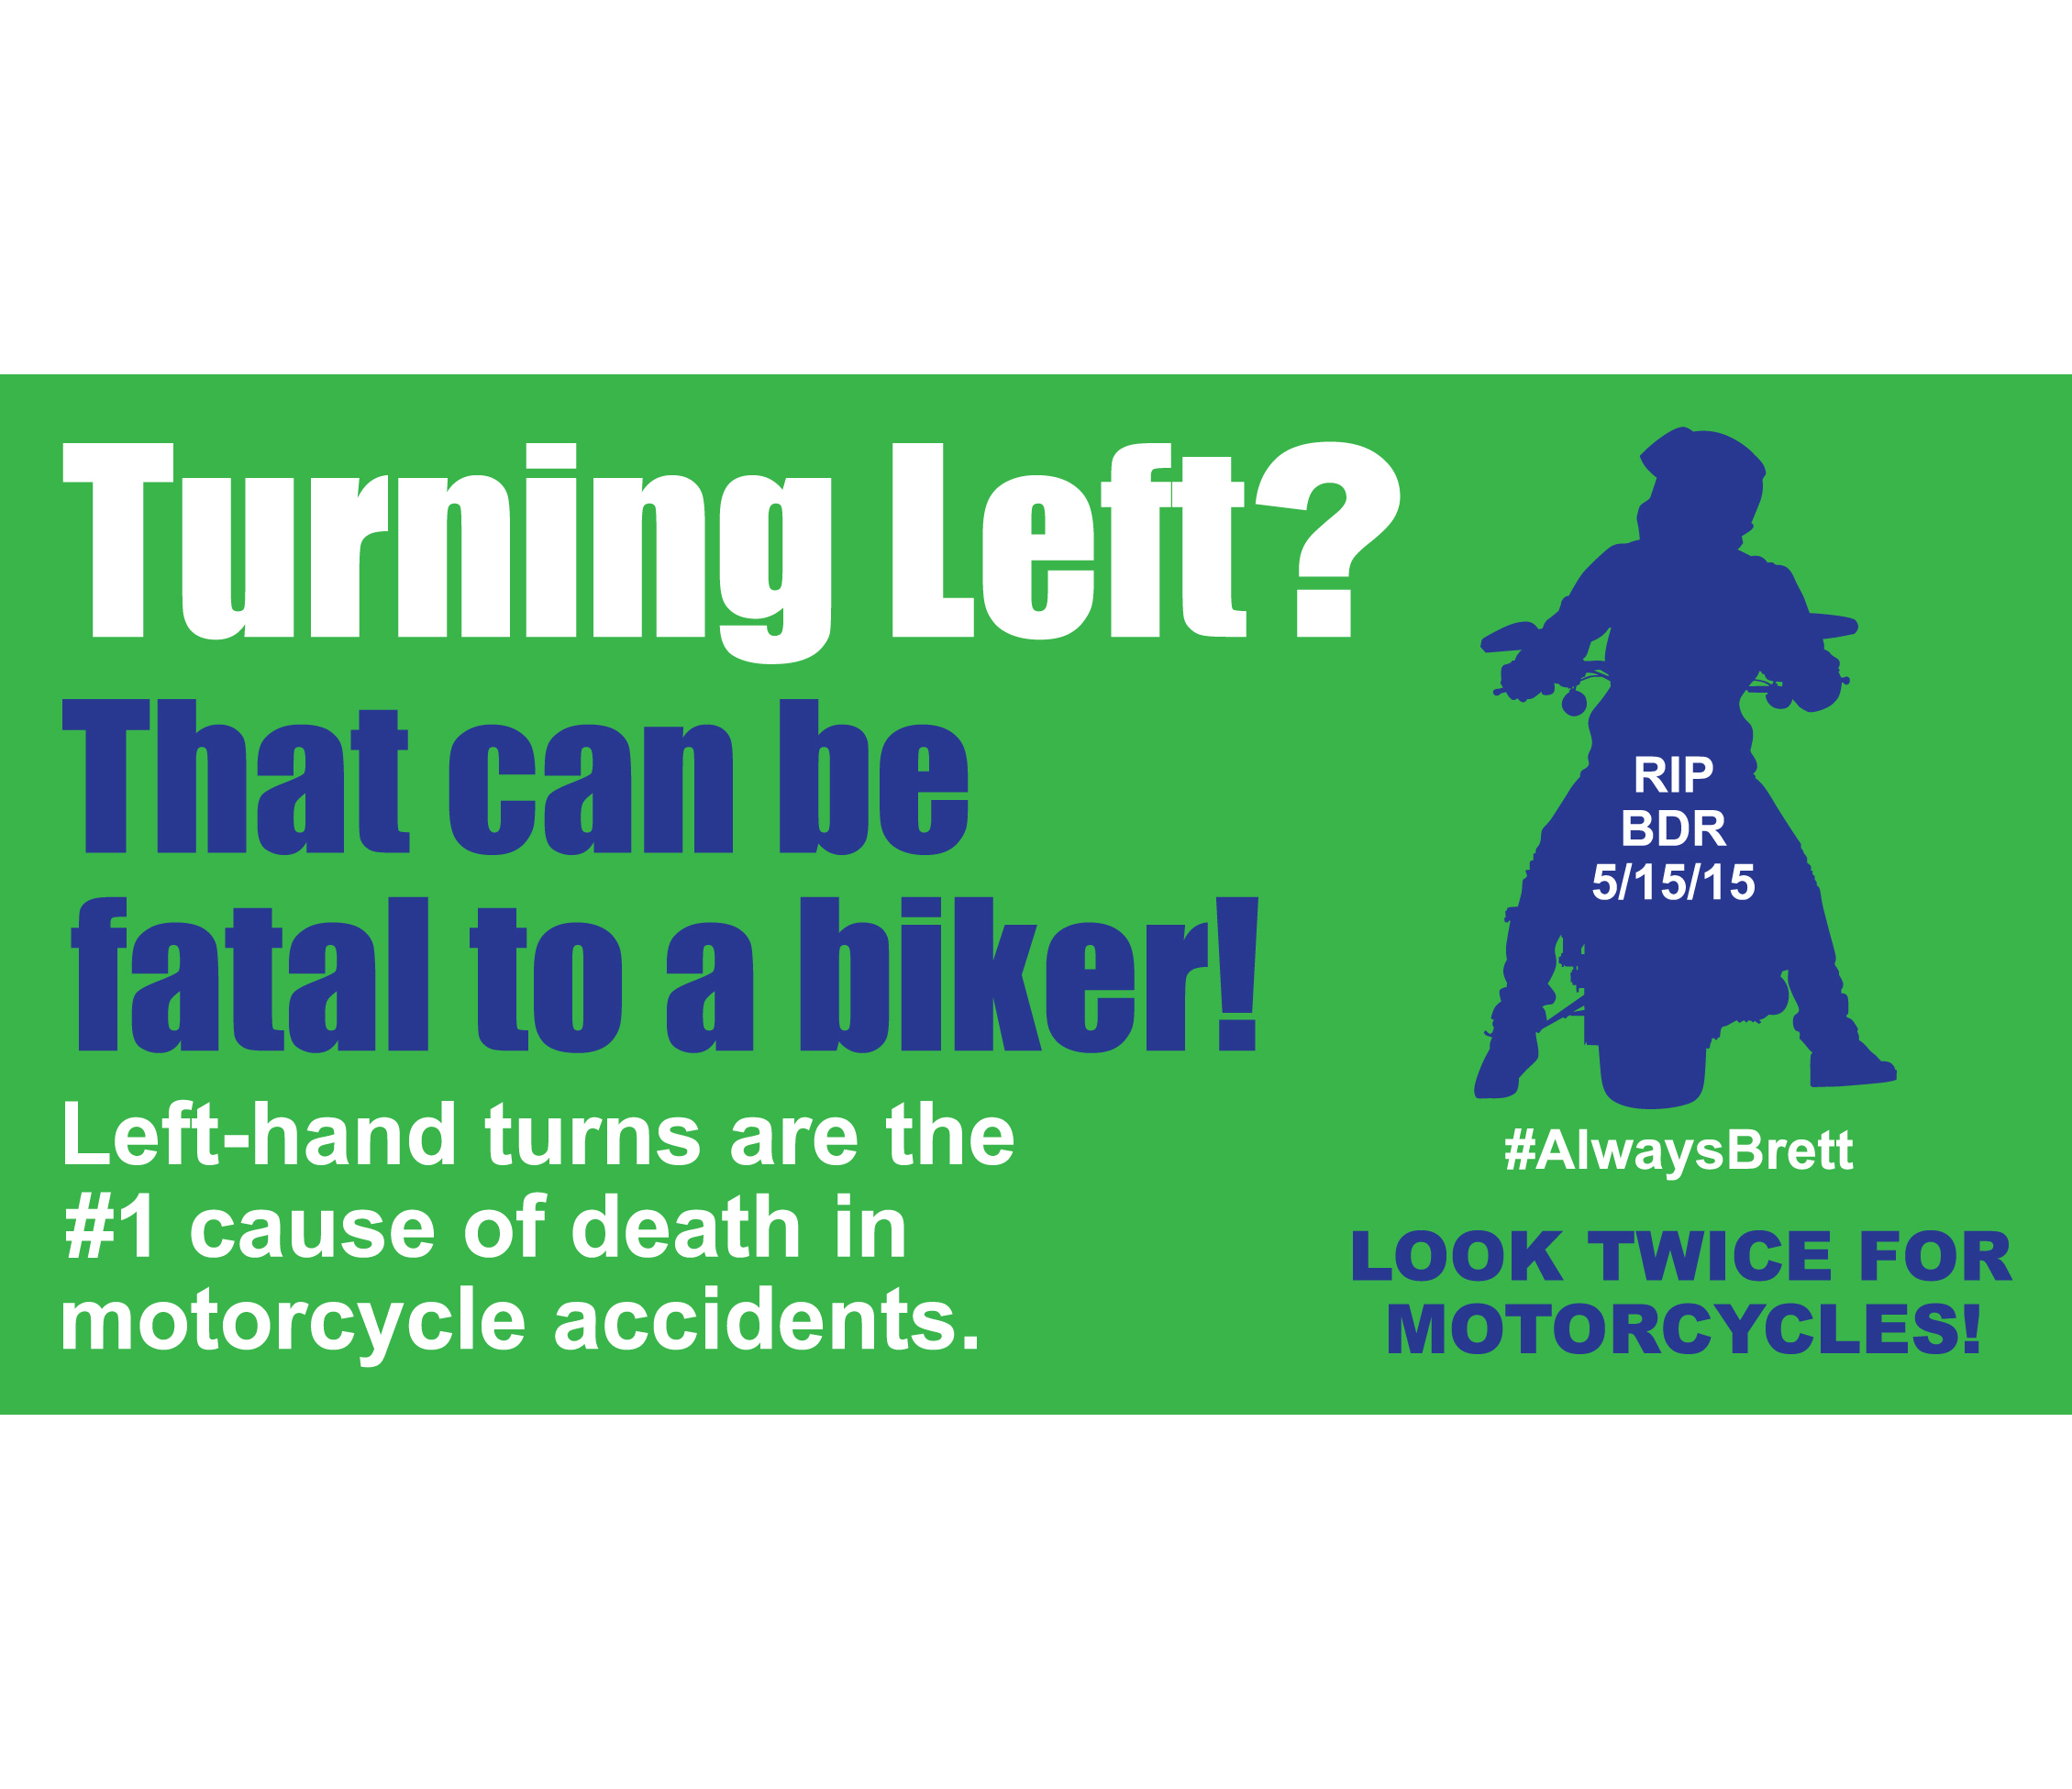 Spread Awareness! - We're selling our newly redesigned removable adhesive bumperstickers to raise awareness about the deadly hazards of left-hand turns to smaller vehicles like bicycles and motorcycles. Designed by Deborah in memory of Brett Rainey. We have a limited amount left so they will only be available at our events.Suggested donation of $10 per bumpersticker.